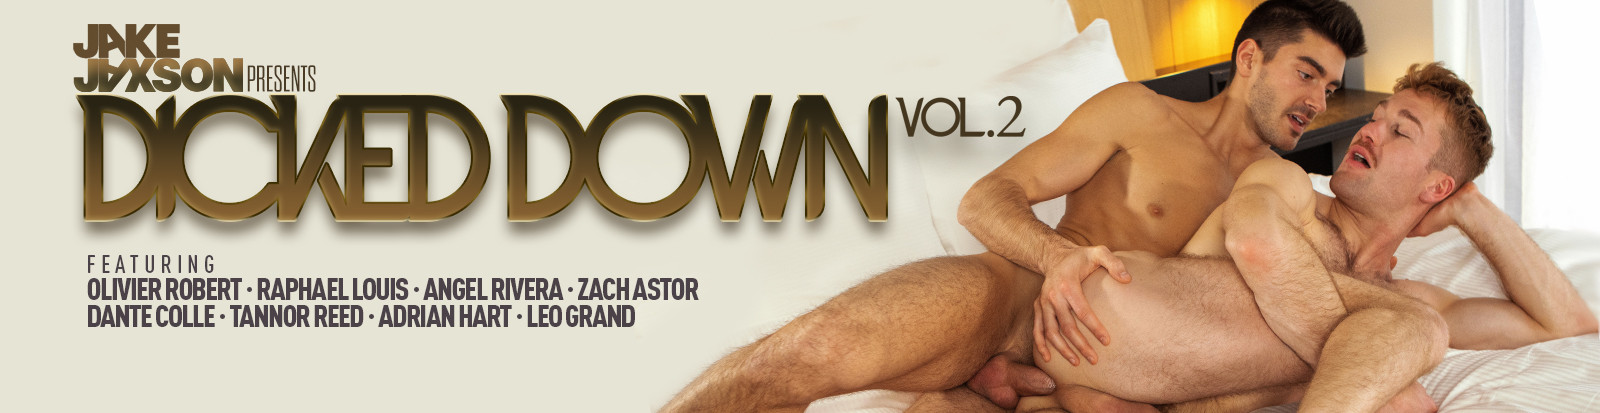 Dicked Down Volume 2 with Olivier Robert